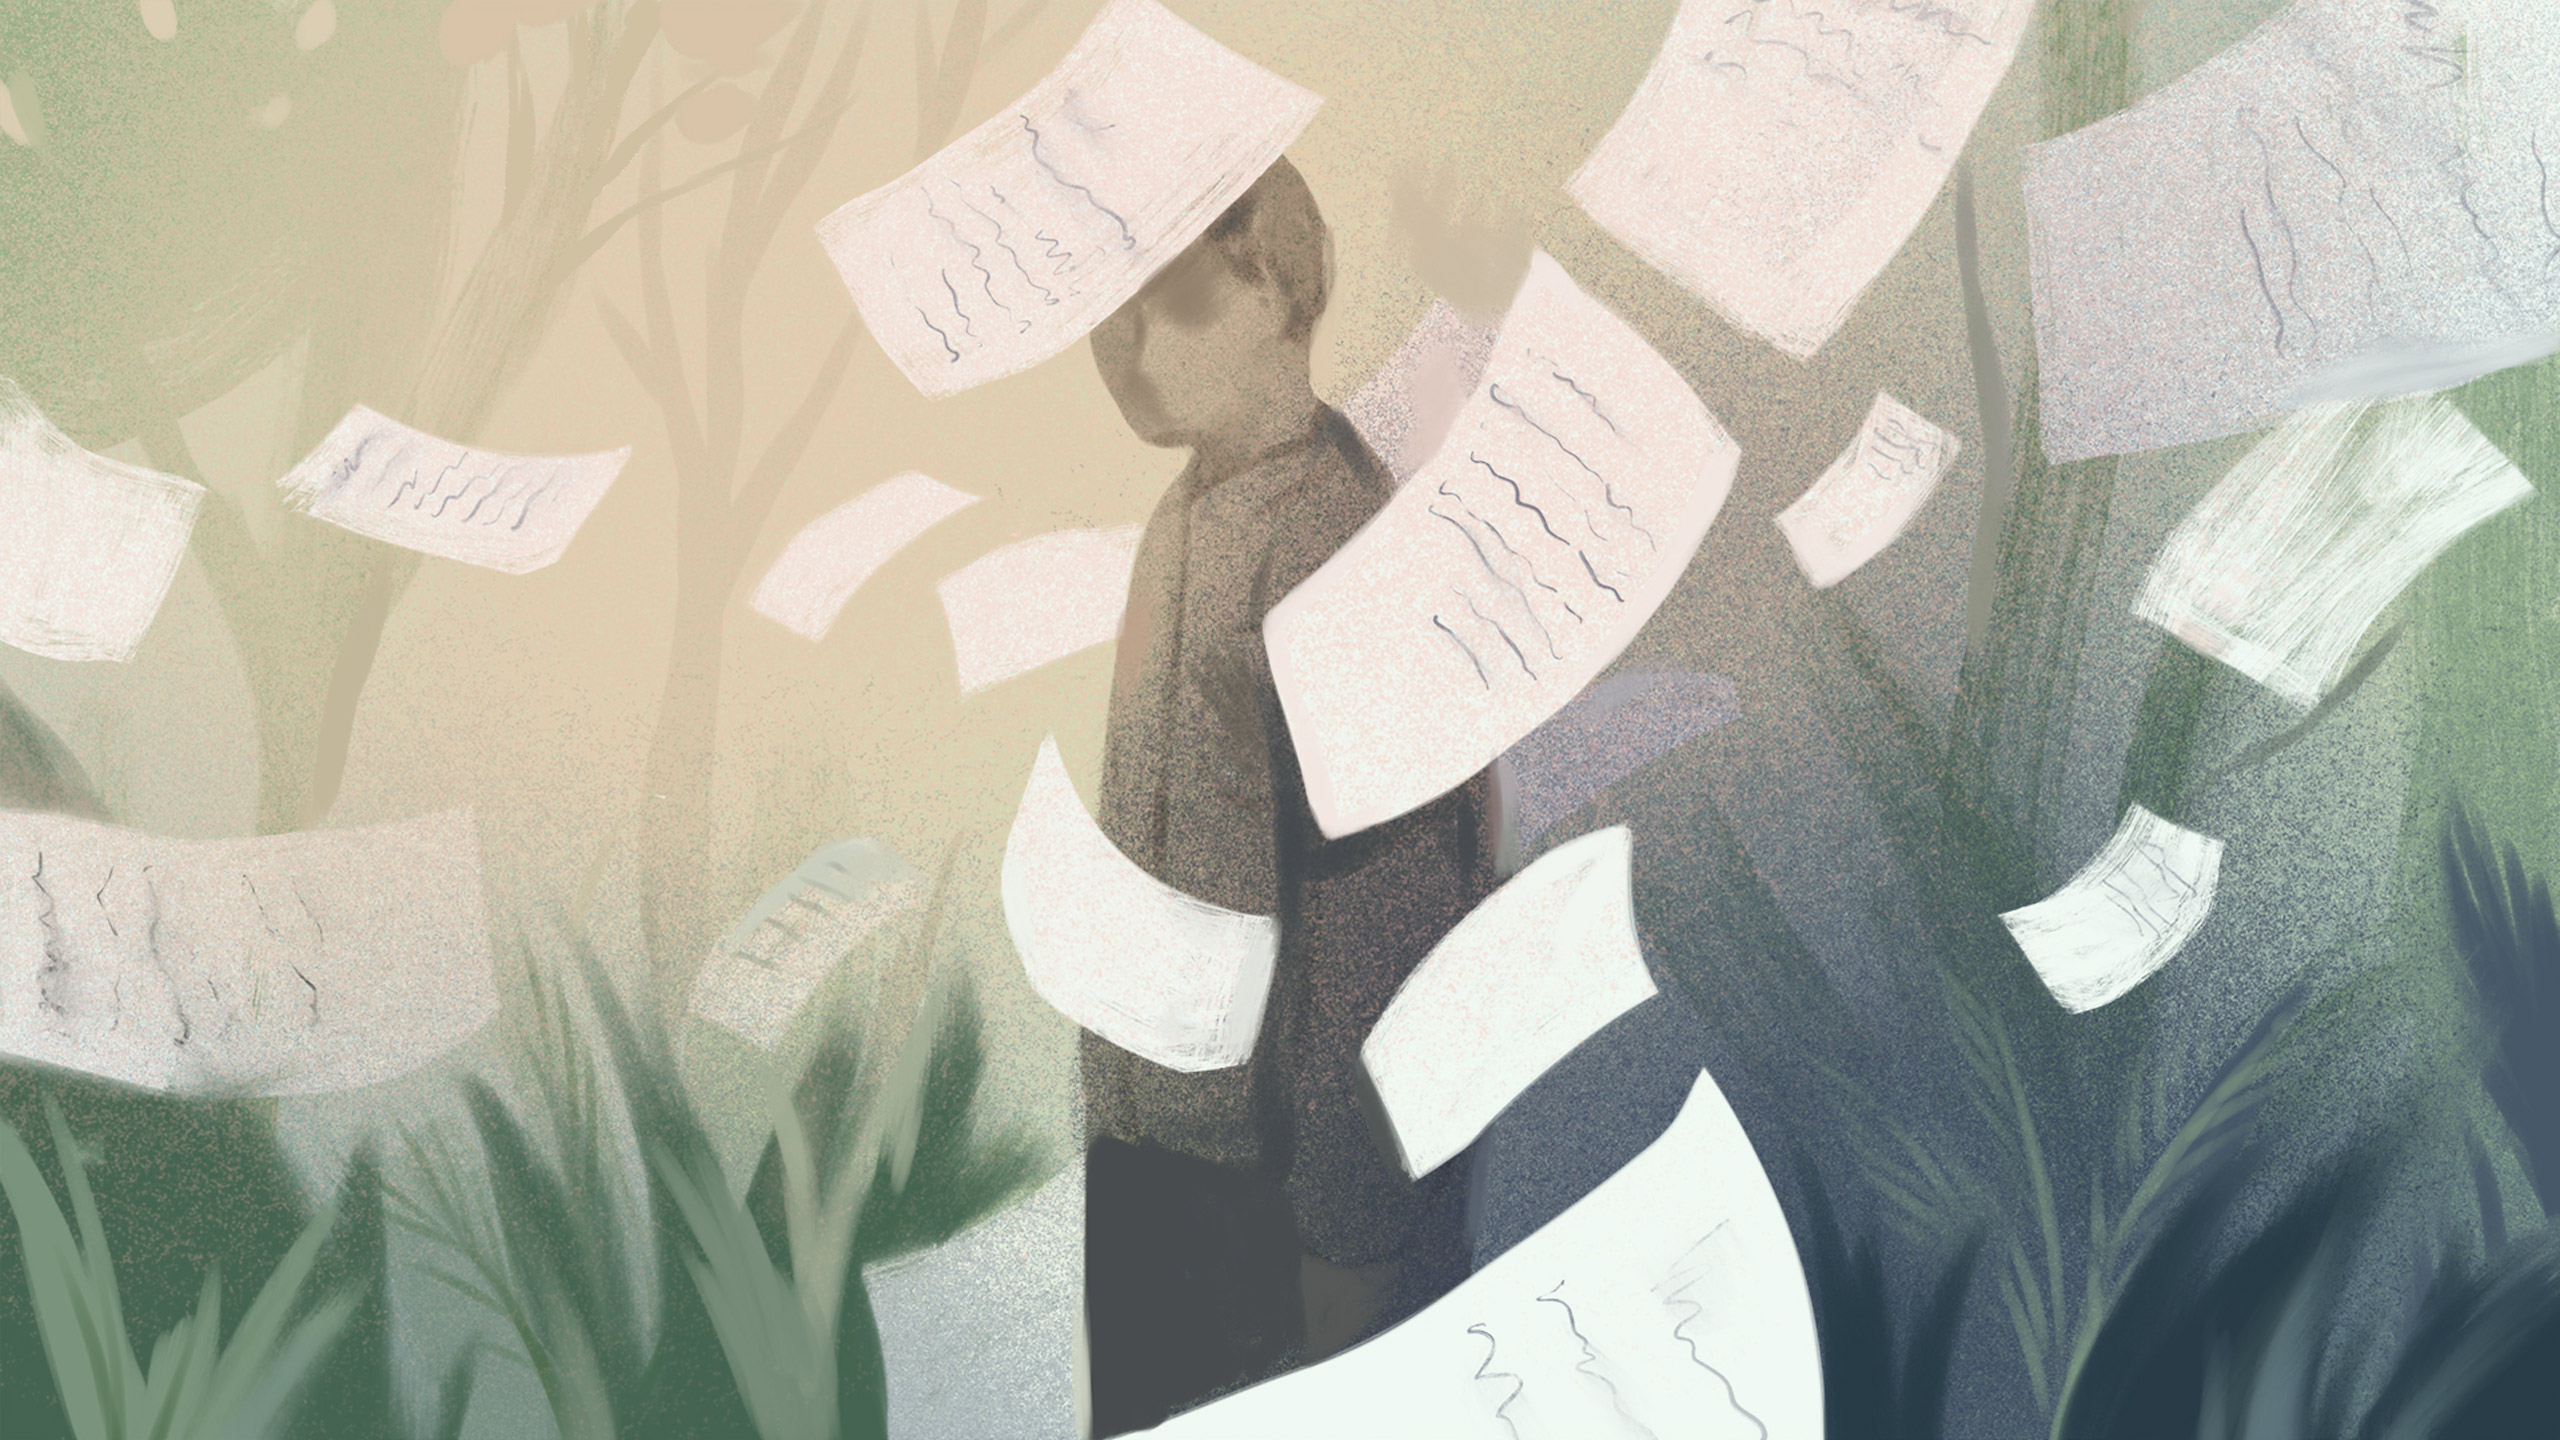 Abstract illustration of a person with correspondence letters floating in the wind surrounding them.